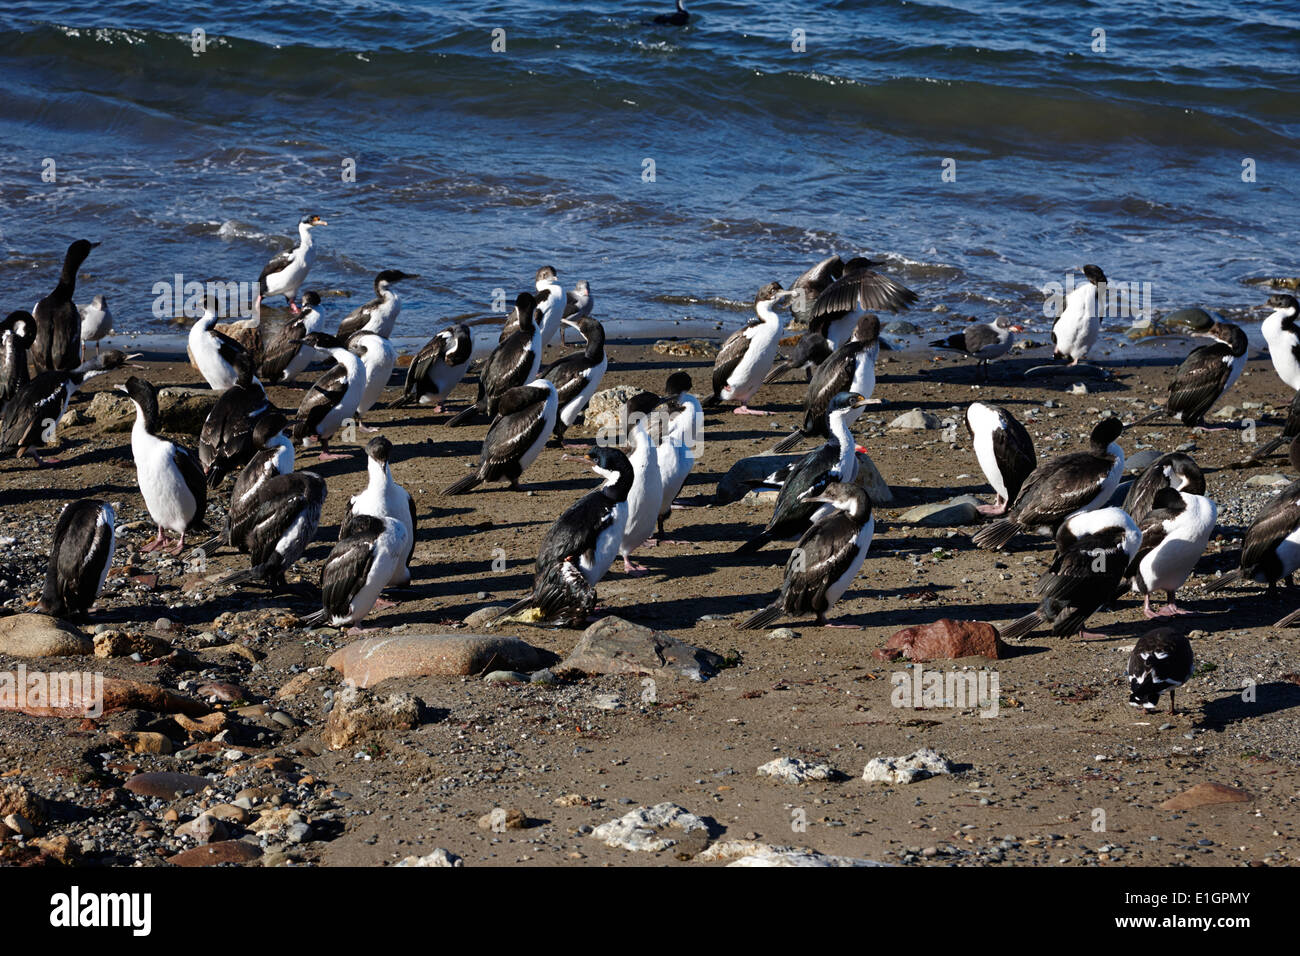 Imperial cormorants and other seabirds Punta Arenas Chile - Stock Image